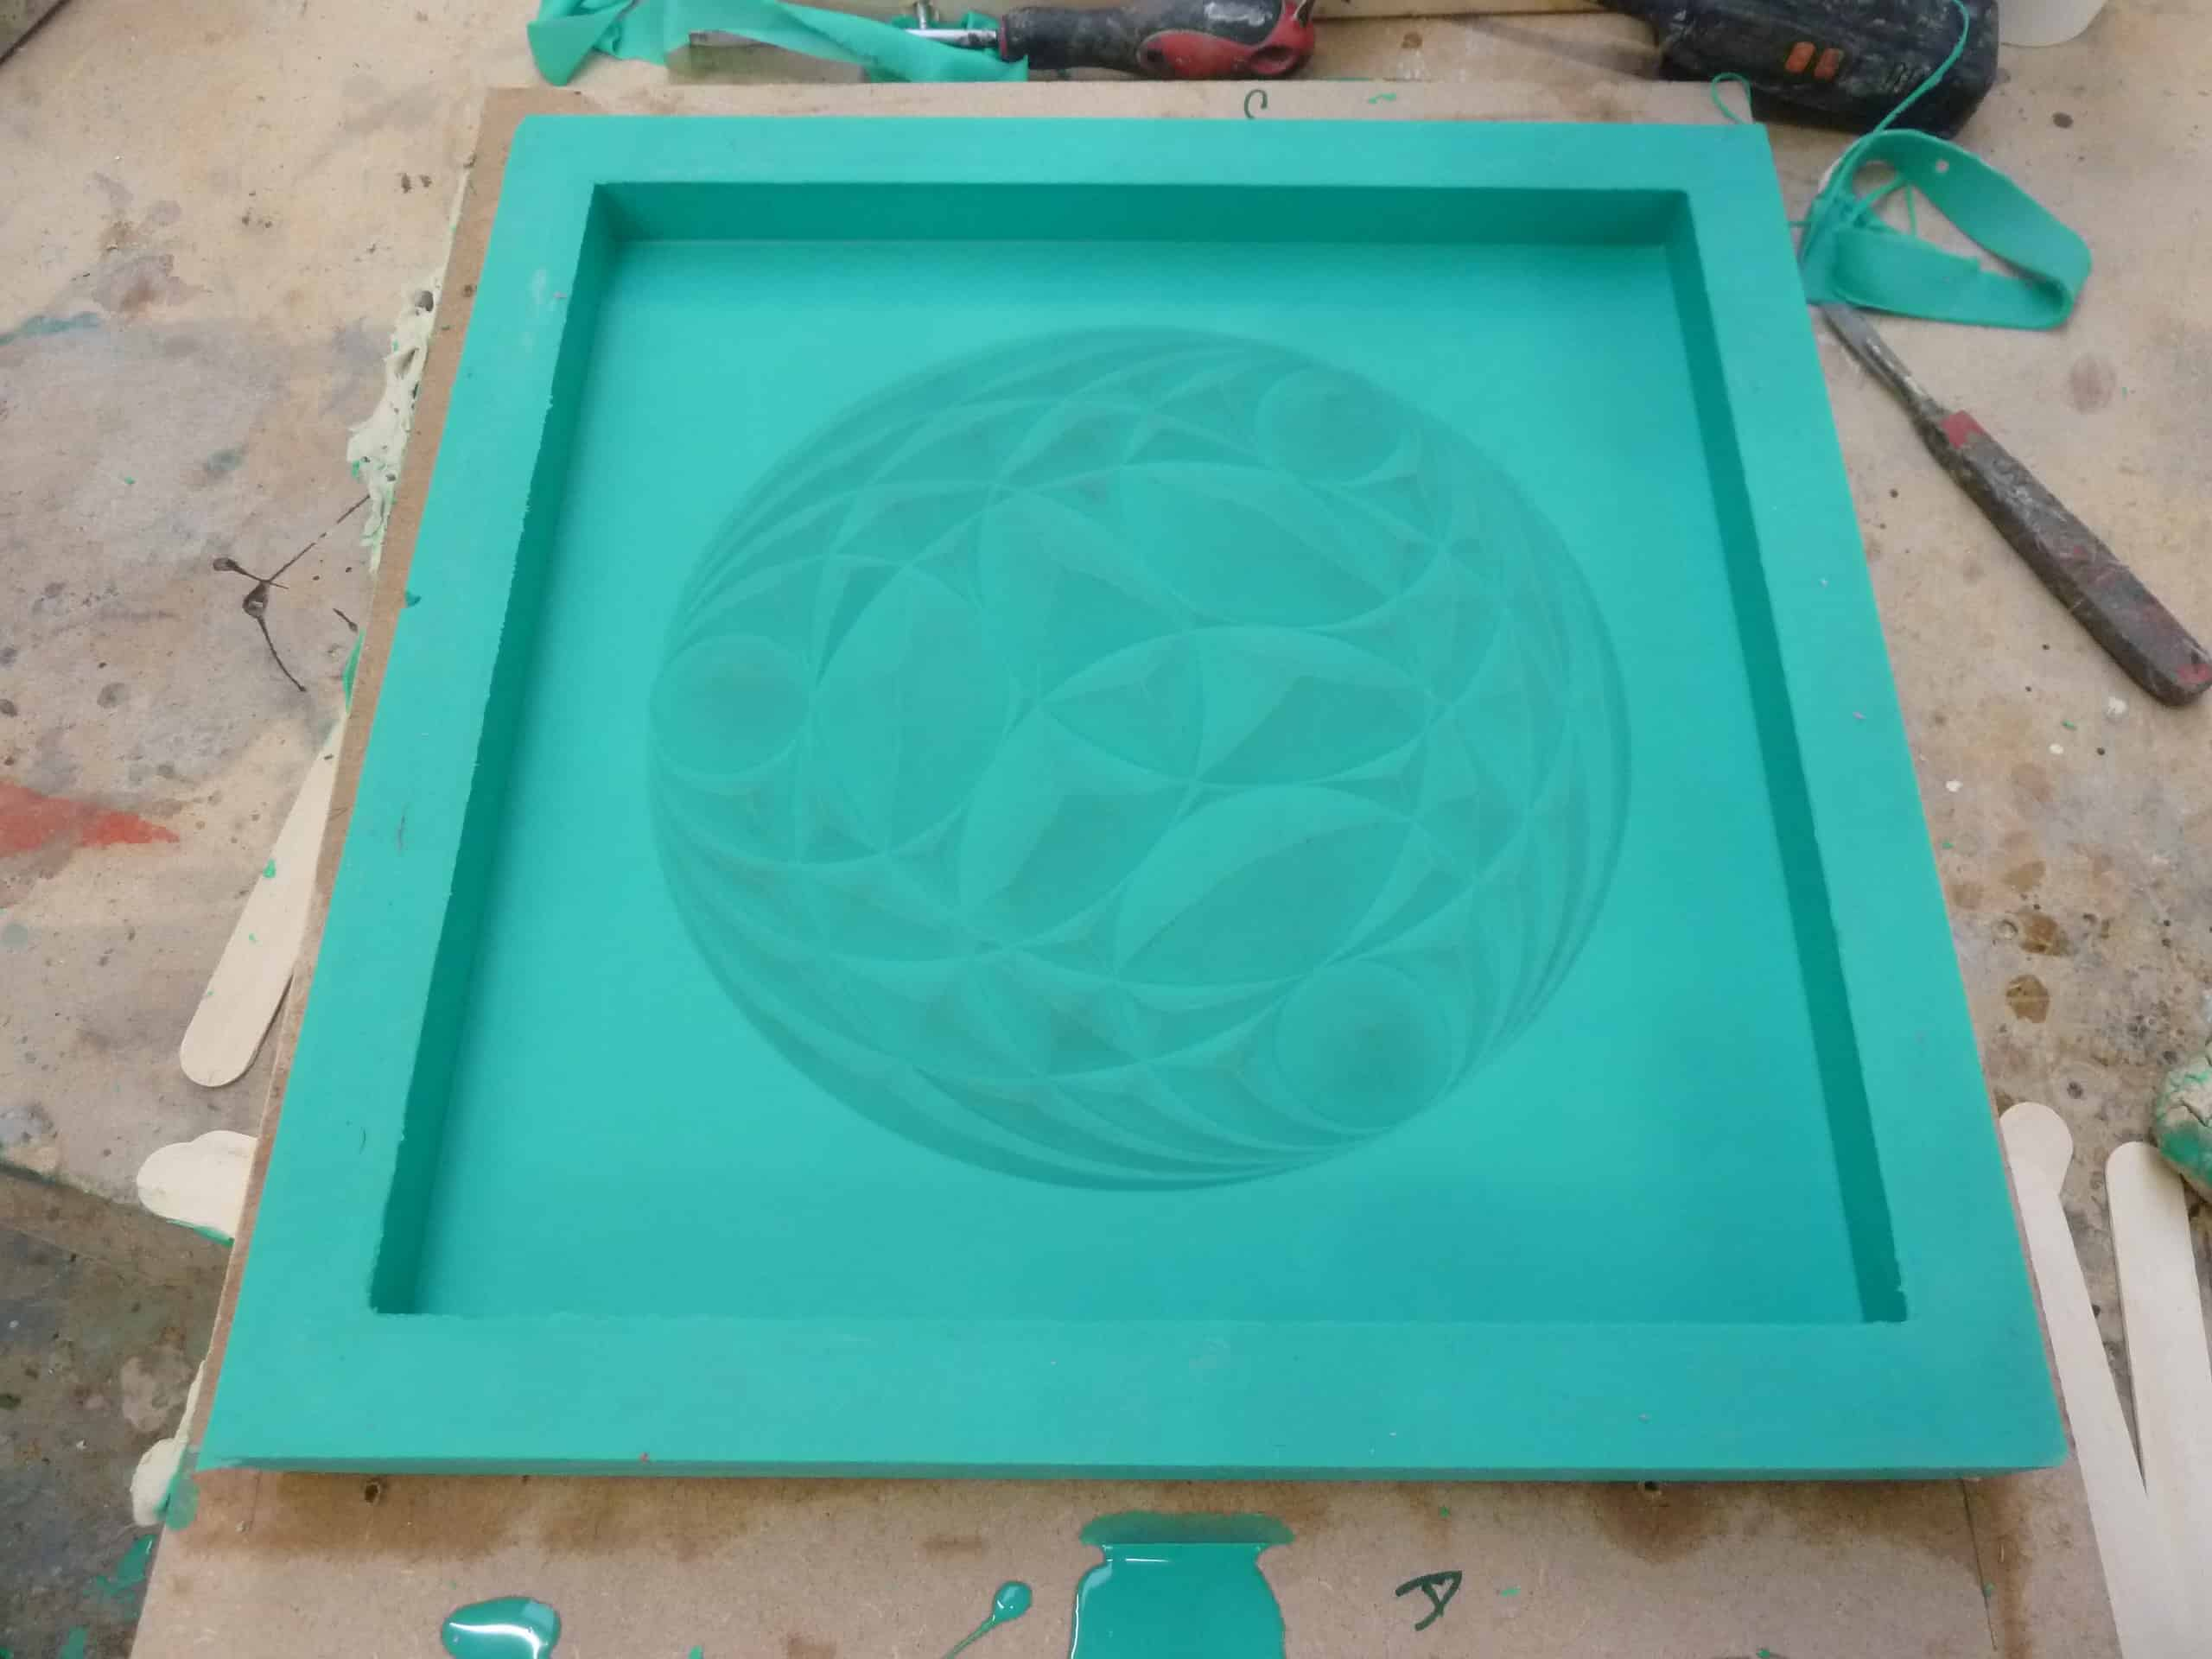 A greeen moul reshly made for Zoe Wilson by Articole Studios